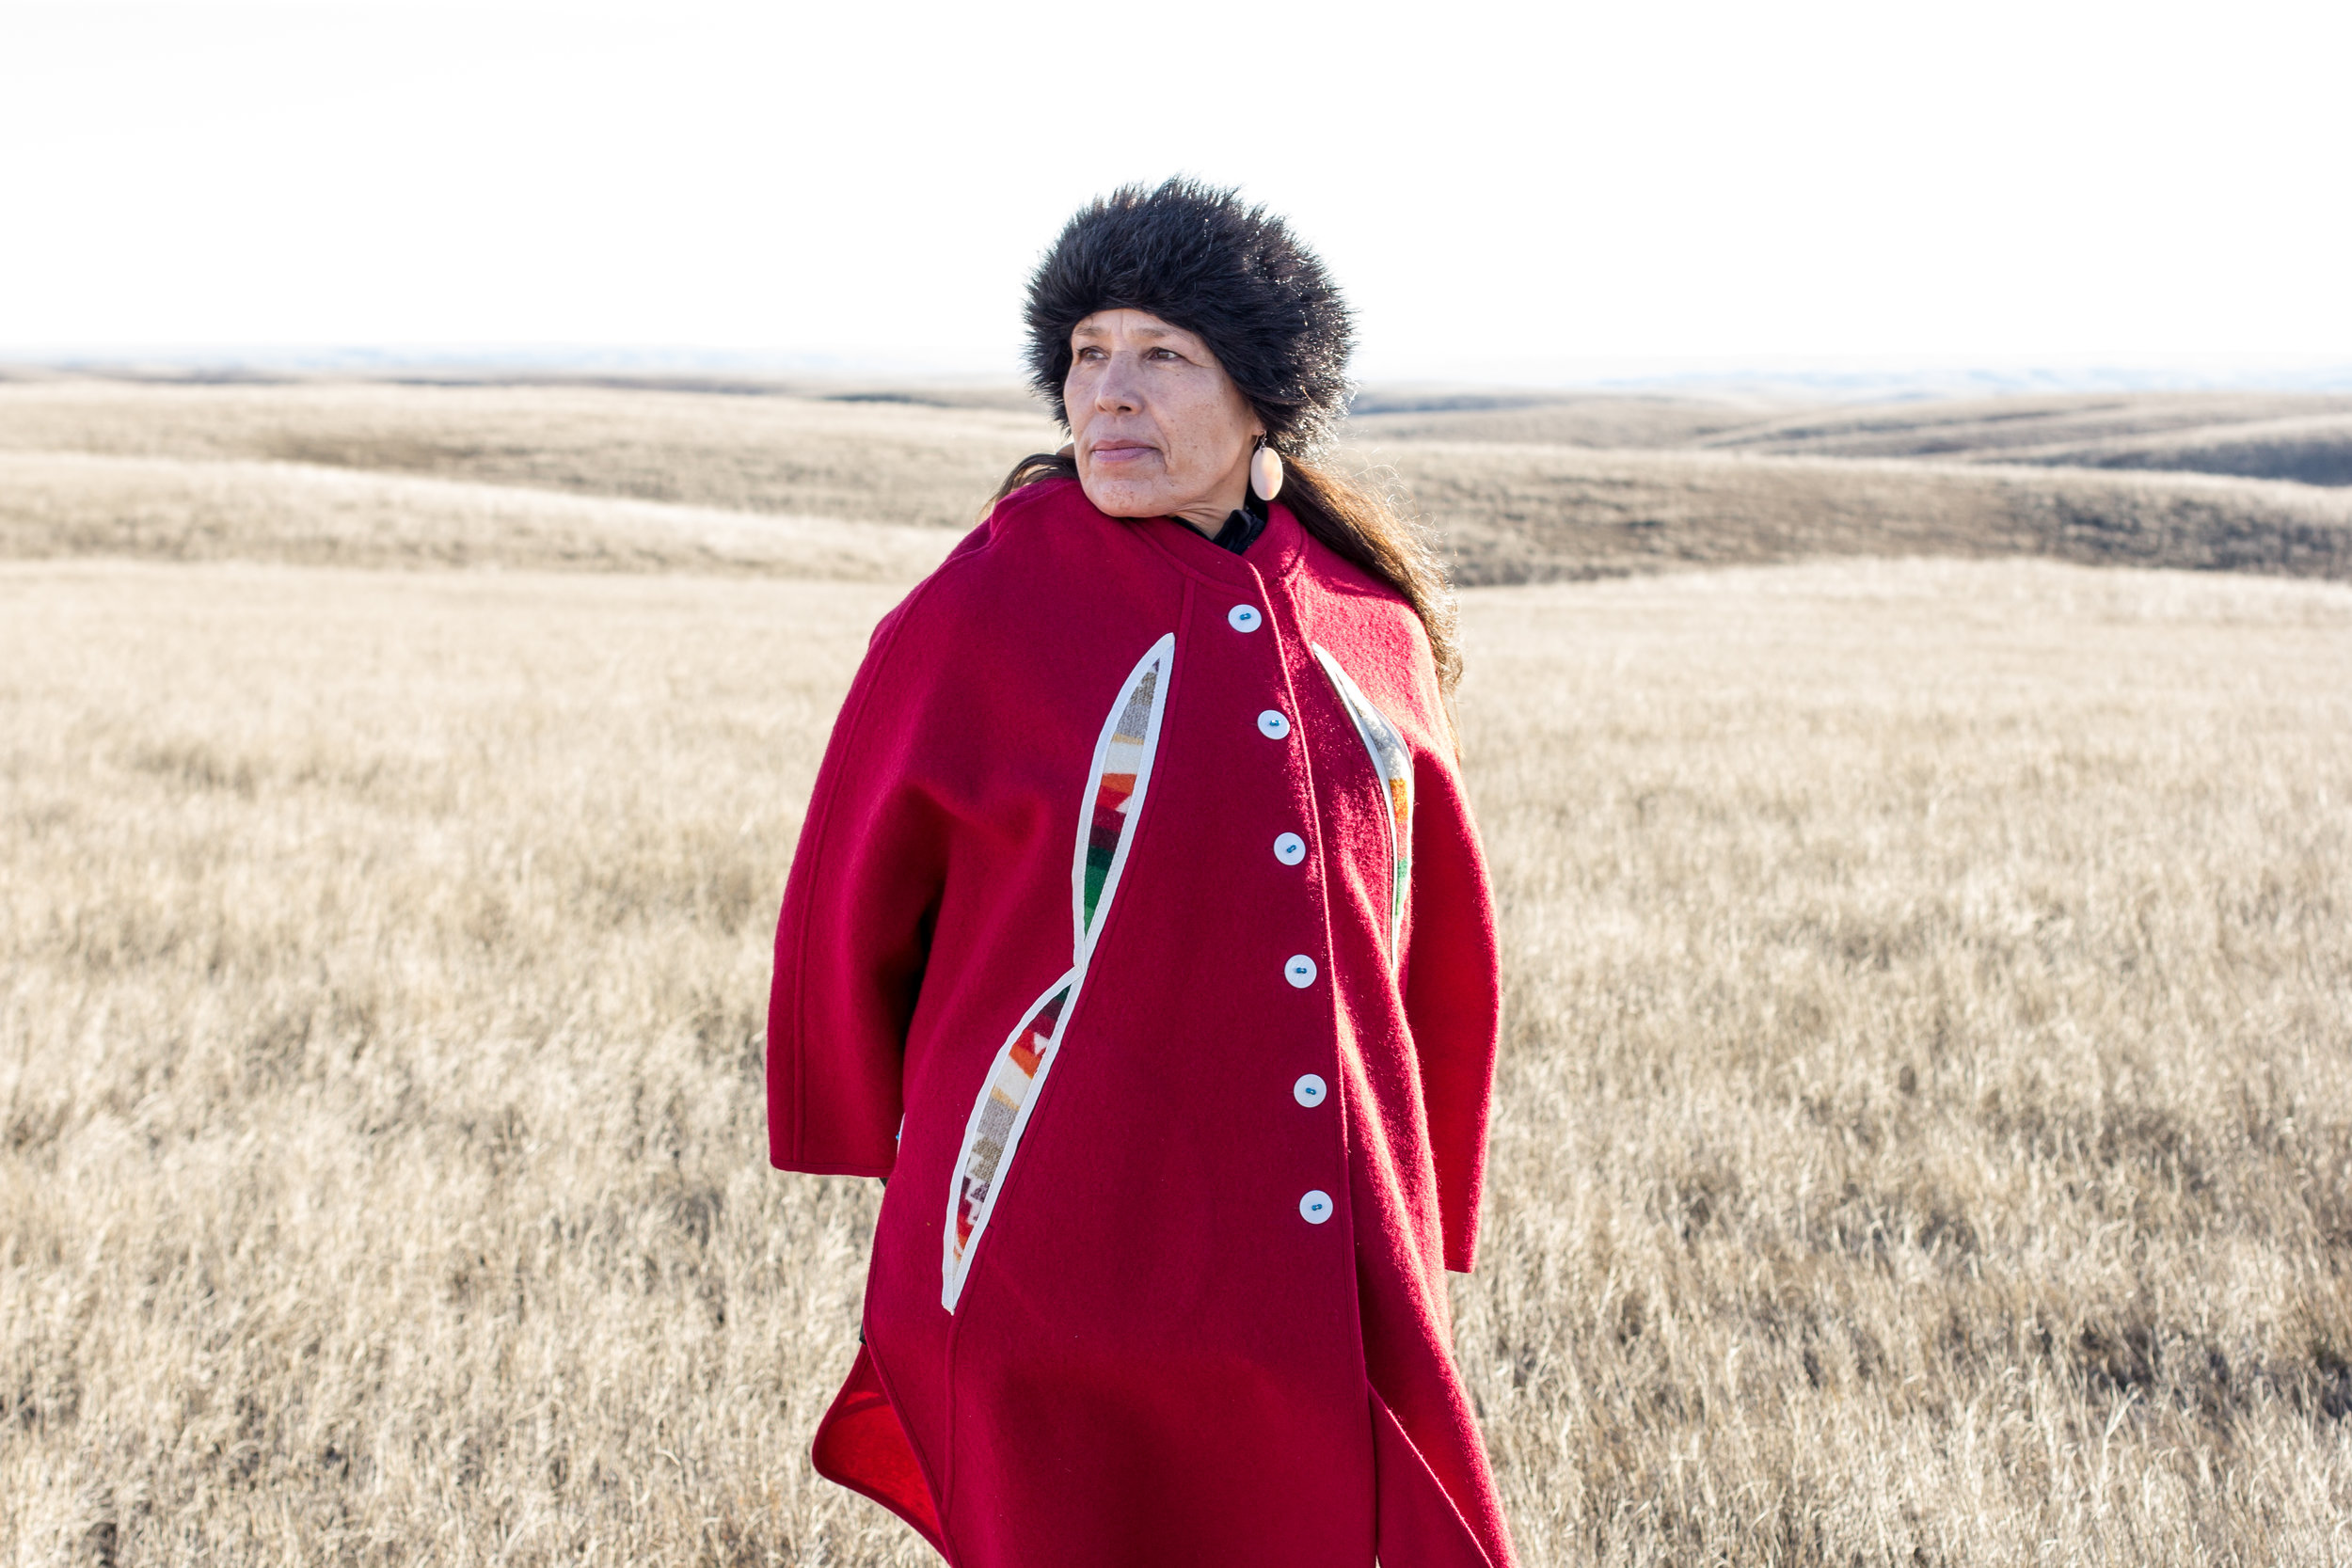 Marcella Gilbert on the Cheyenne River Reservation land where the build will take place.